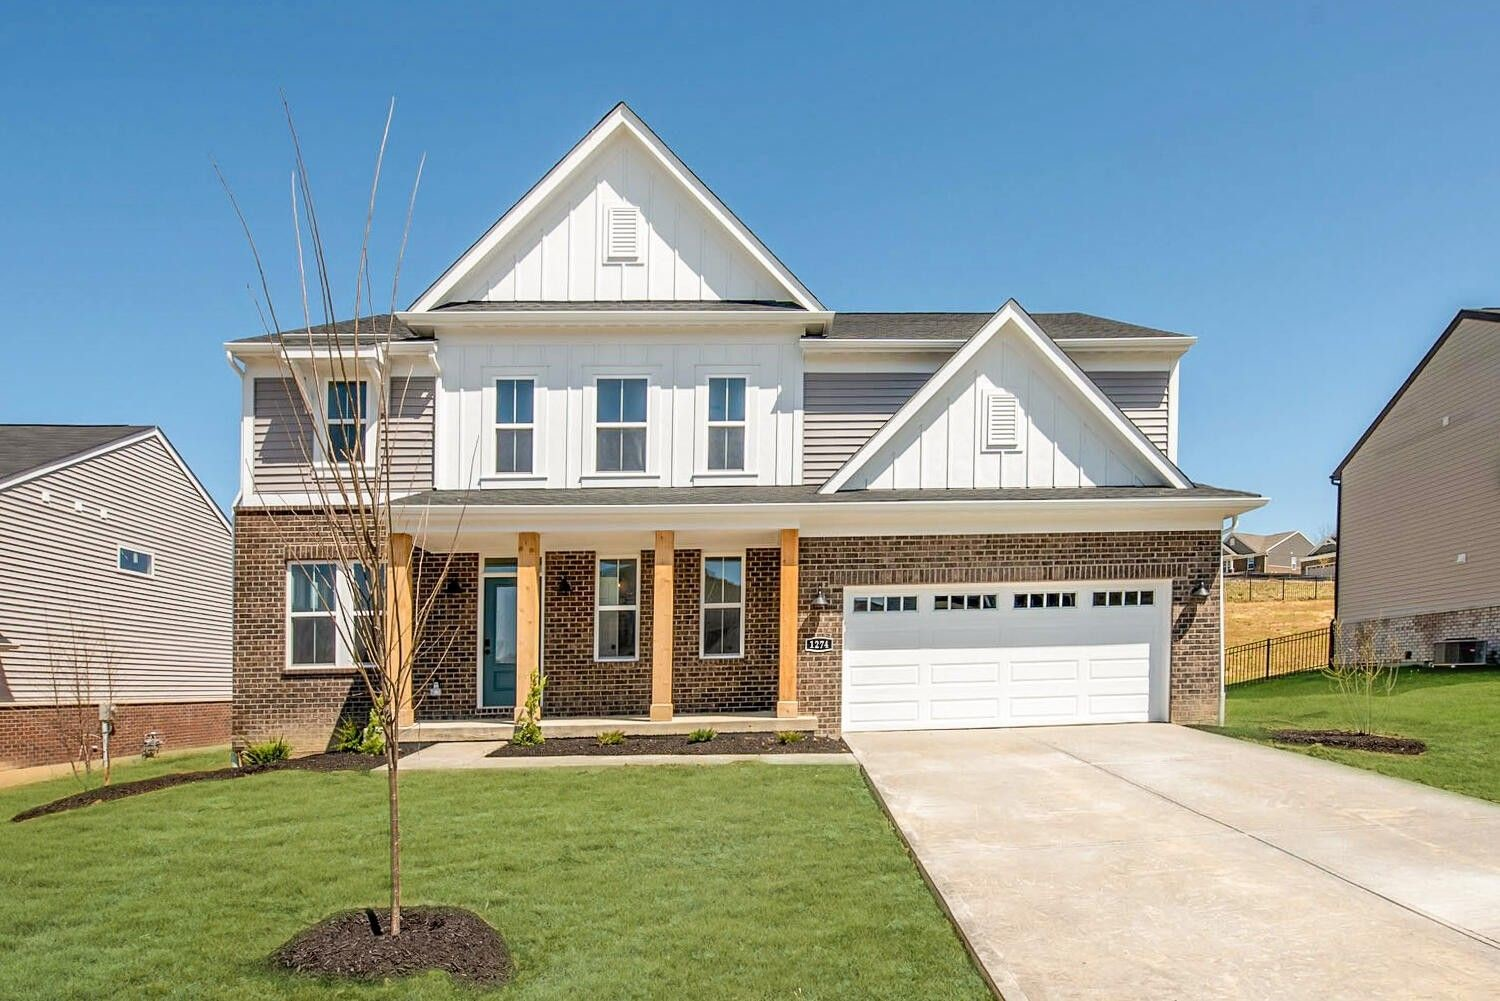 Move In Ready New Home In The Reserve of Parkside Community